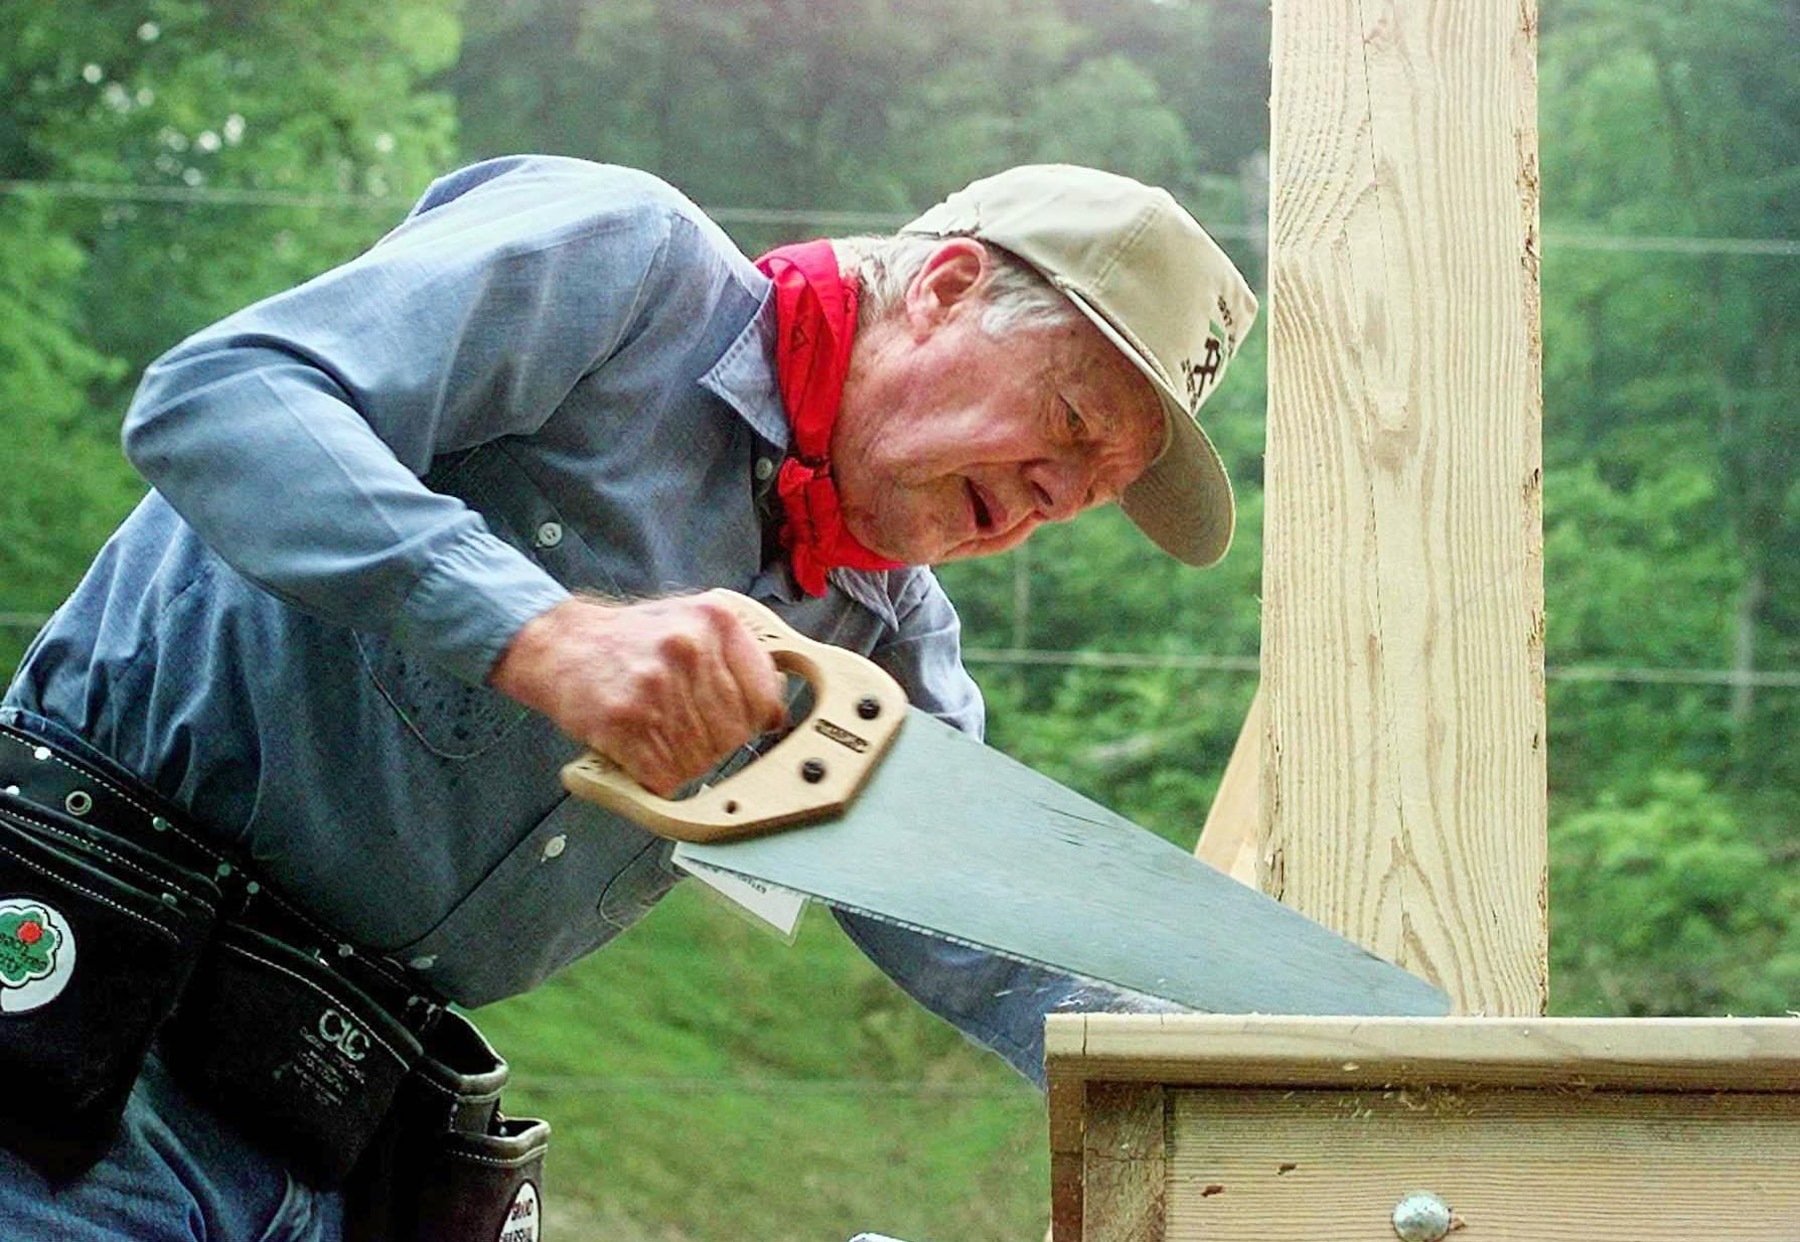 Jimmy Carter sawing plywood (© AP Images)